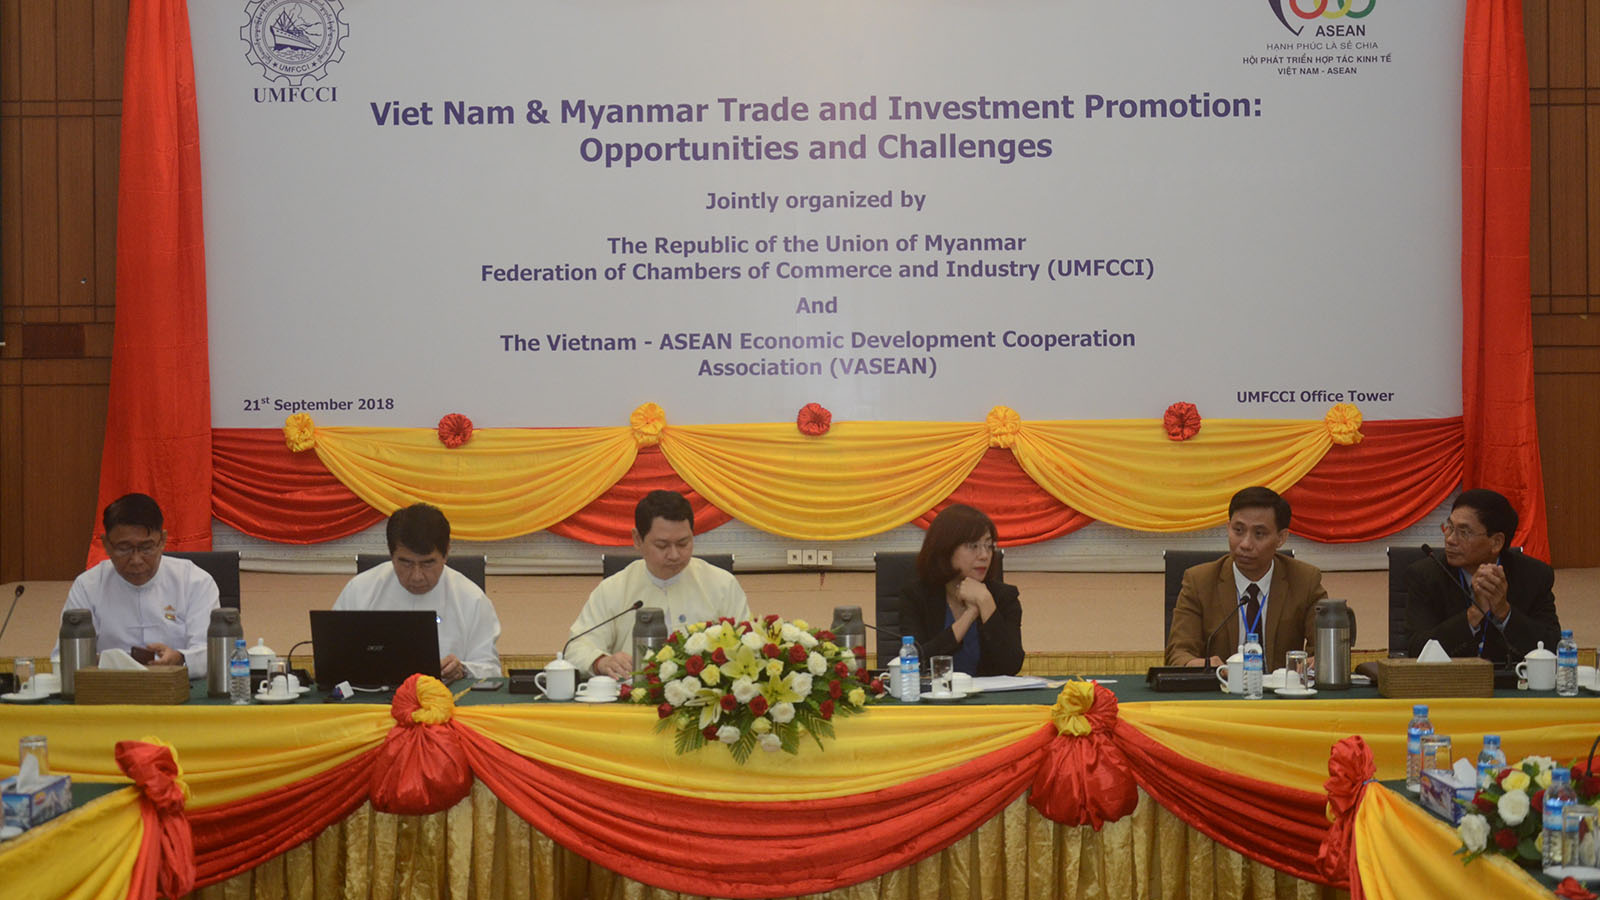 Viet Nam-Myanmar Trade & Investment Promotion event being held at UMFCCI in Yangon yesterday.Photo: Phoe Khwar